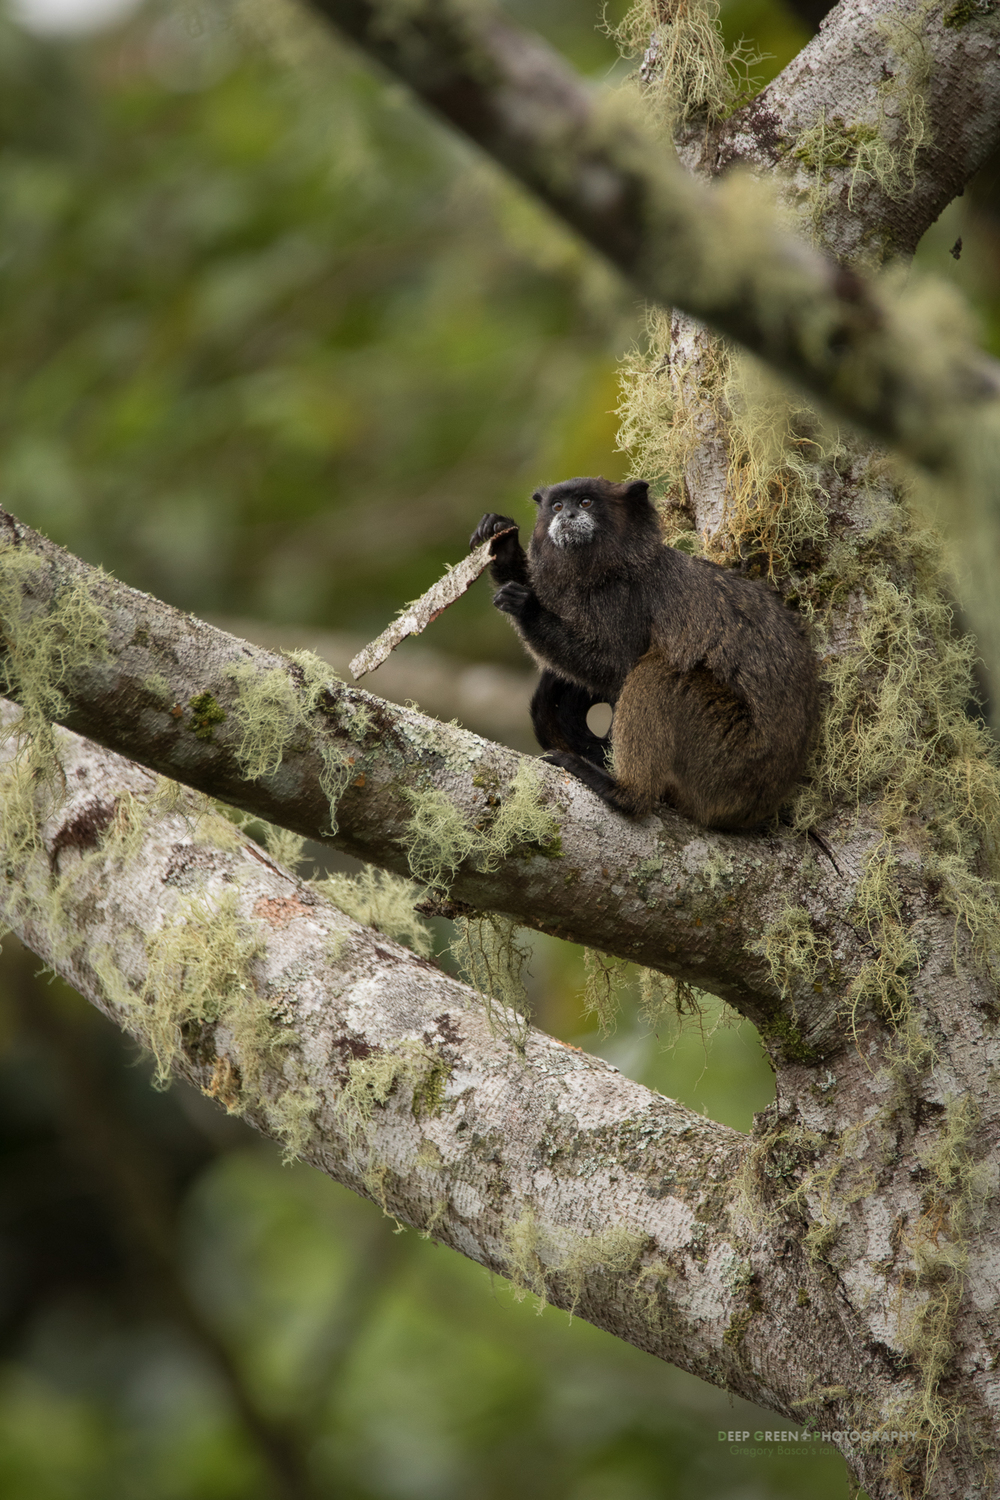 A dusky titi monkey in the rainforest near Ecuador's Sumaco volcano eats lichen-encrusted bark.